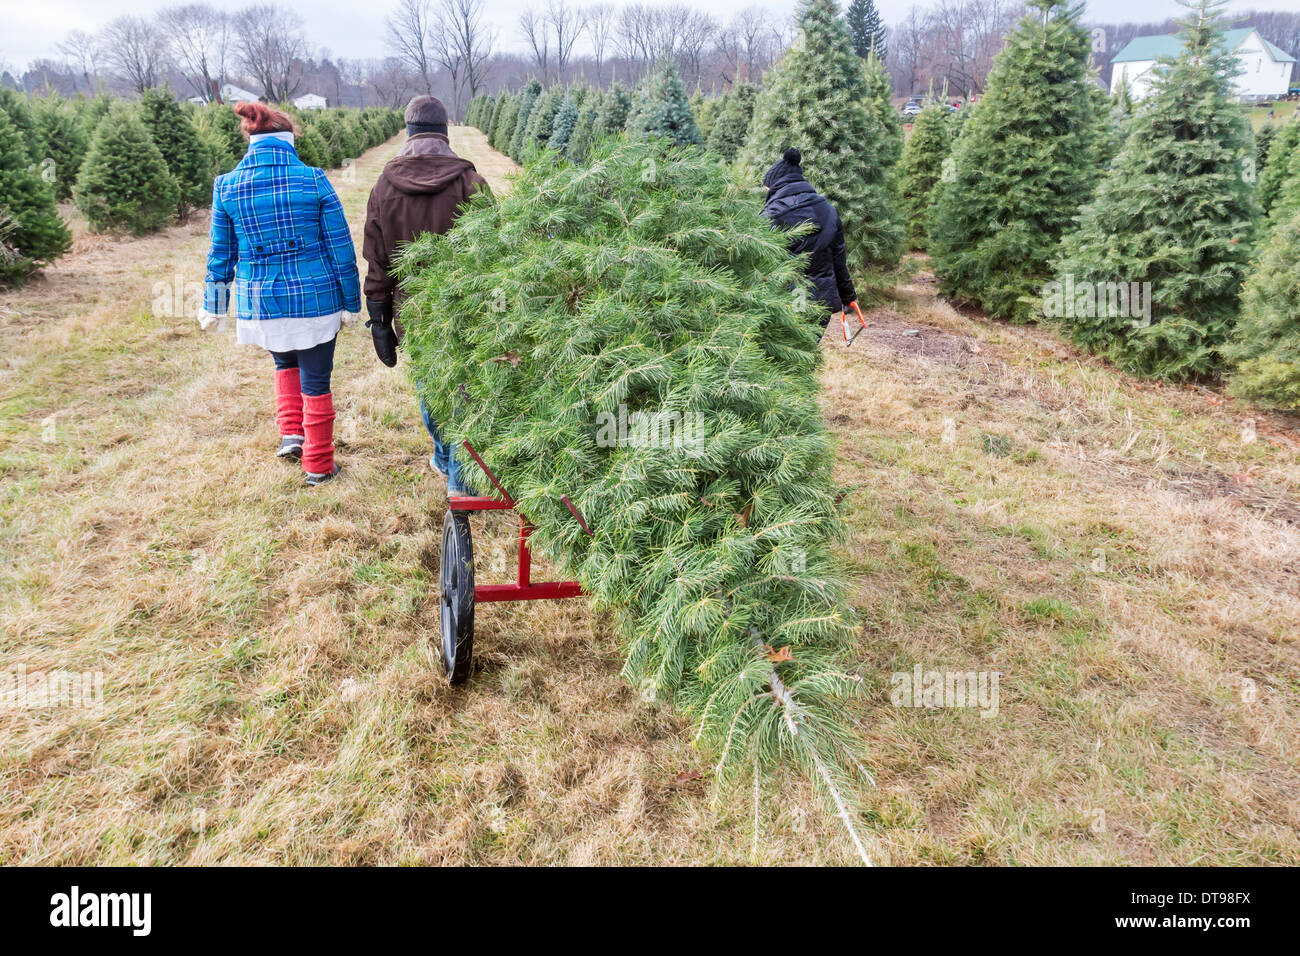 A Christmas Tree Being Pulled By People Who Cut Down A Christmas  - Christmas Trees To Cut Down